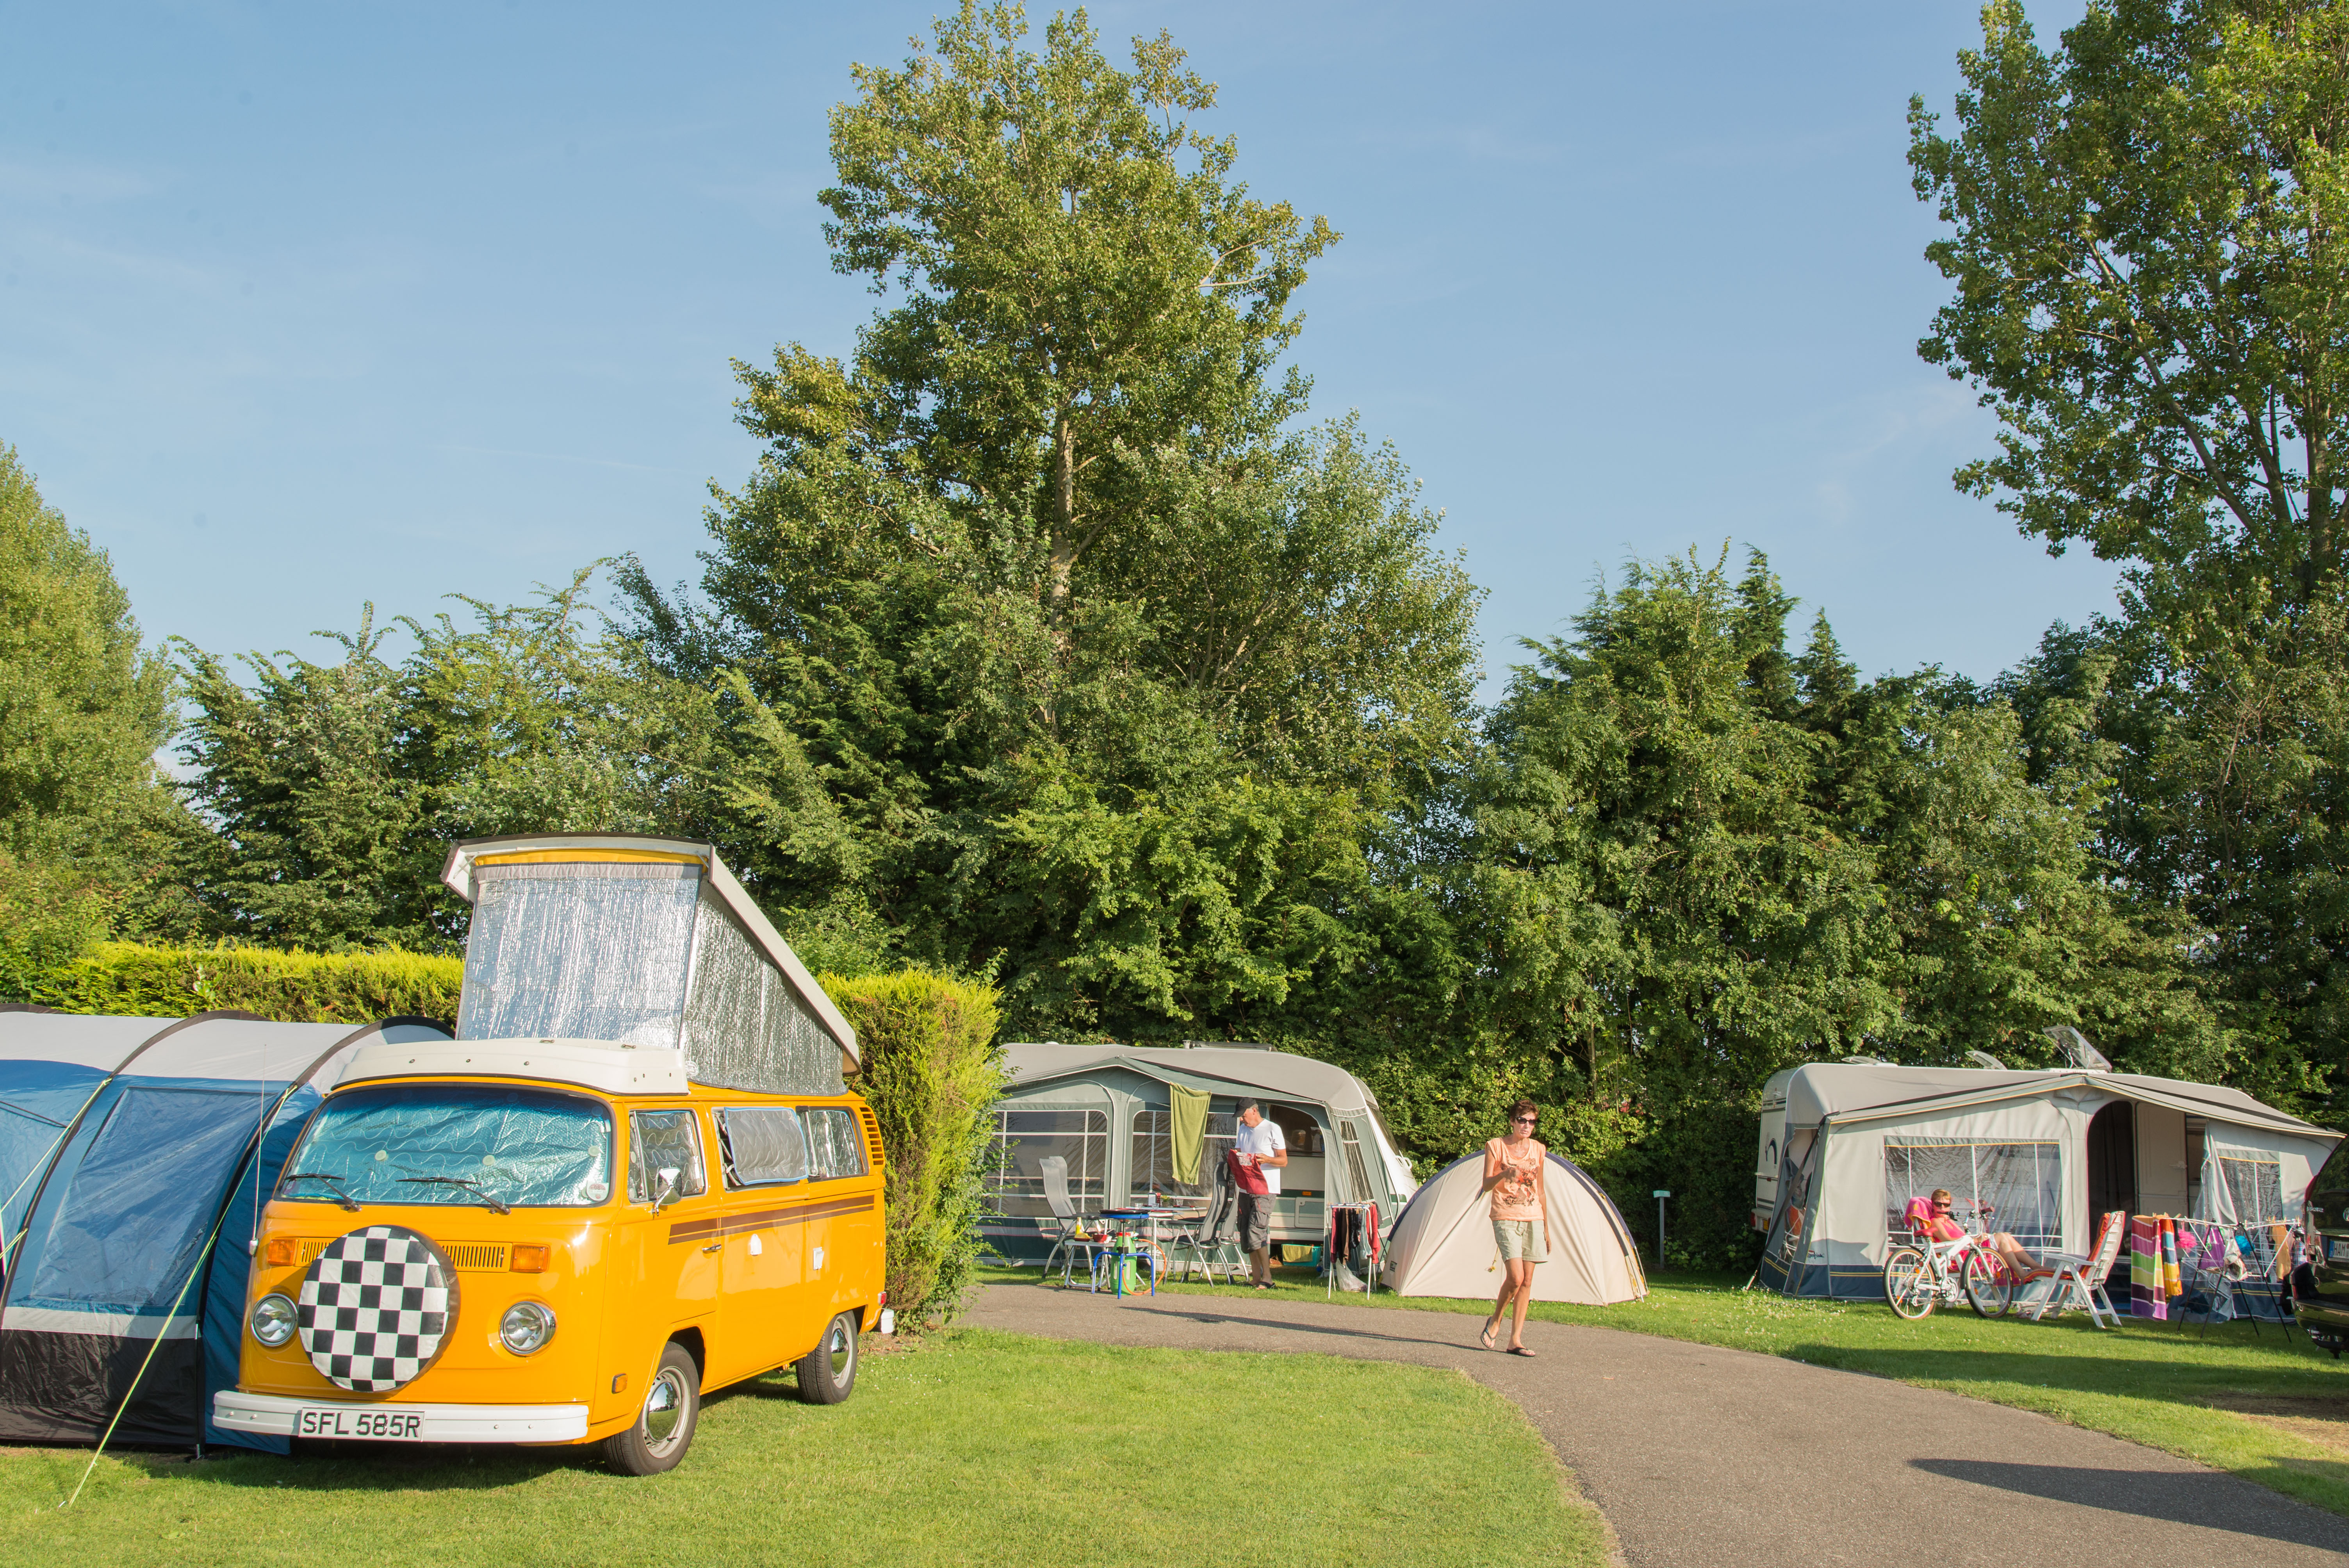 Campsite in the western part of holland vakantiepark - Campsites in holland with swimming pool ...